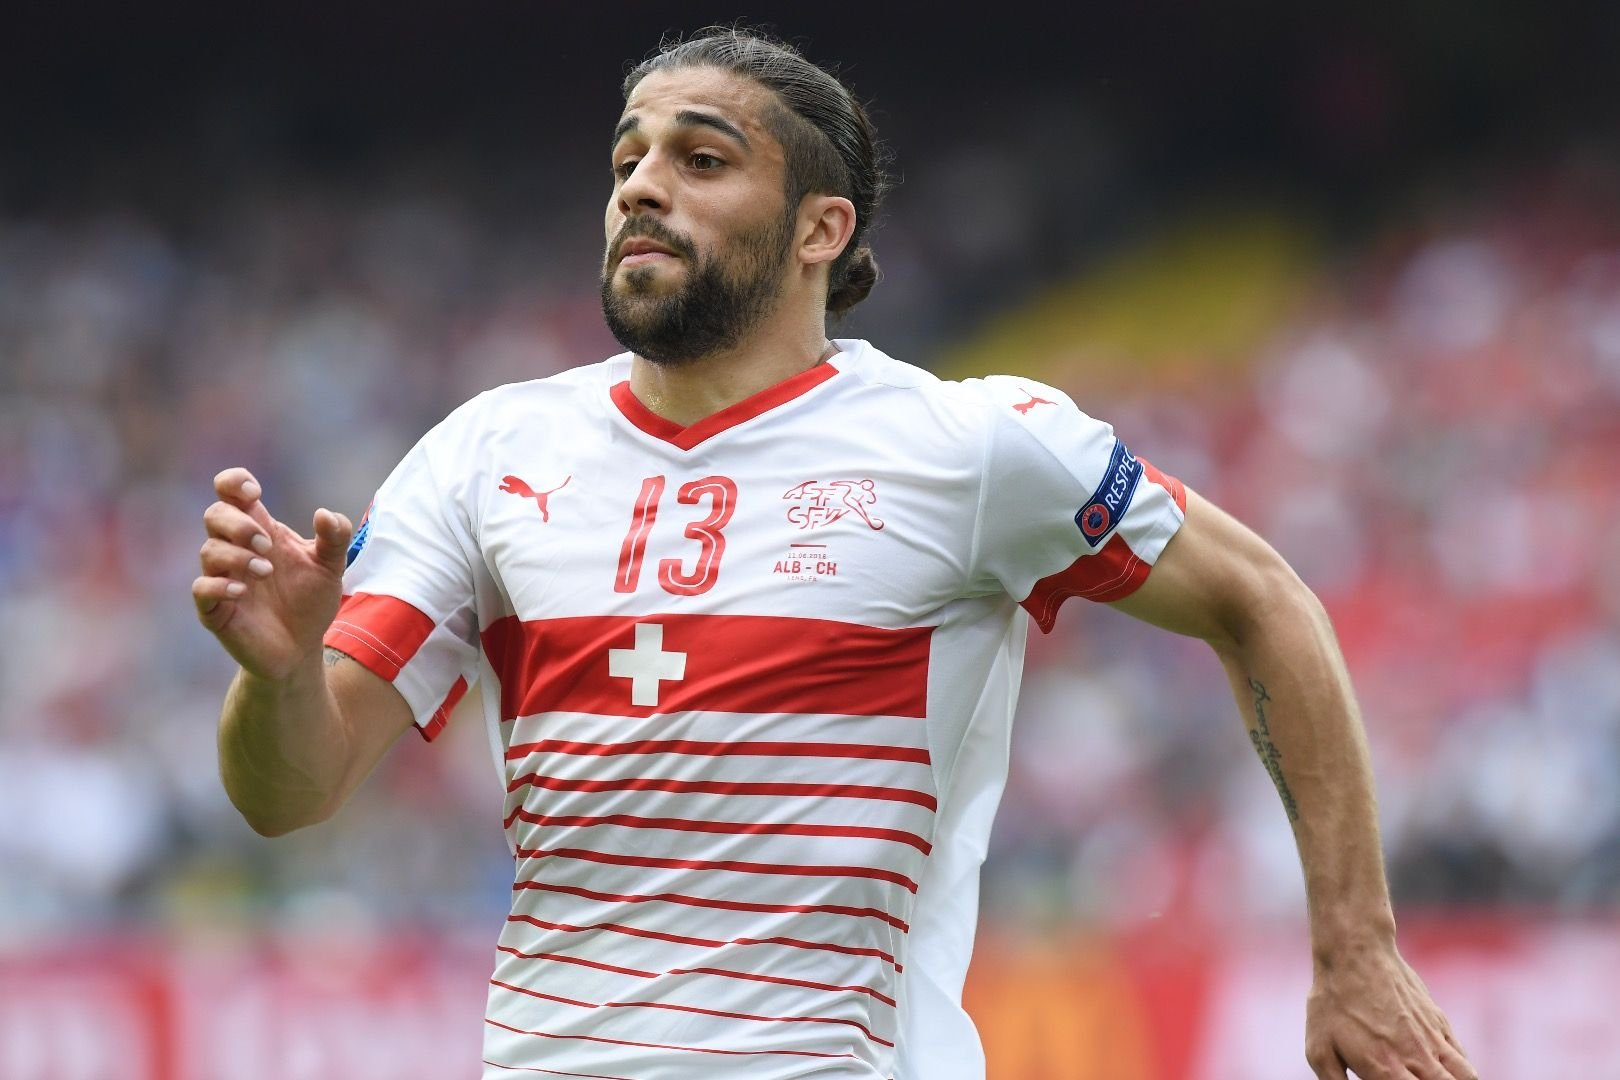 Schalke chasing Ricardo Rodriguez to compete with Baba Rahman